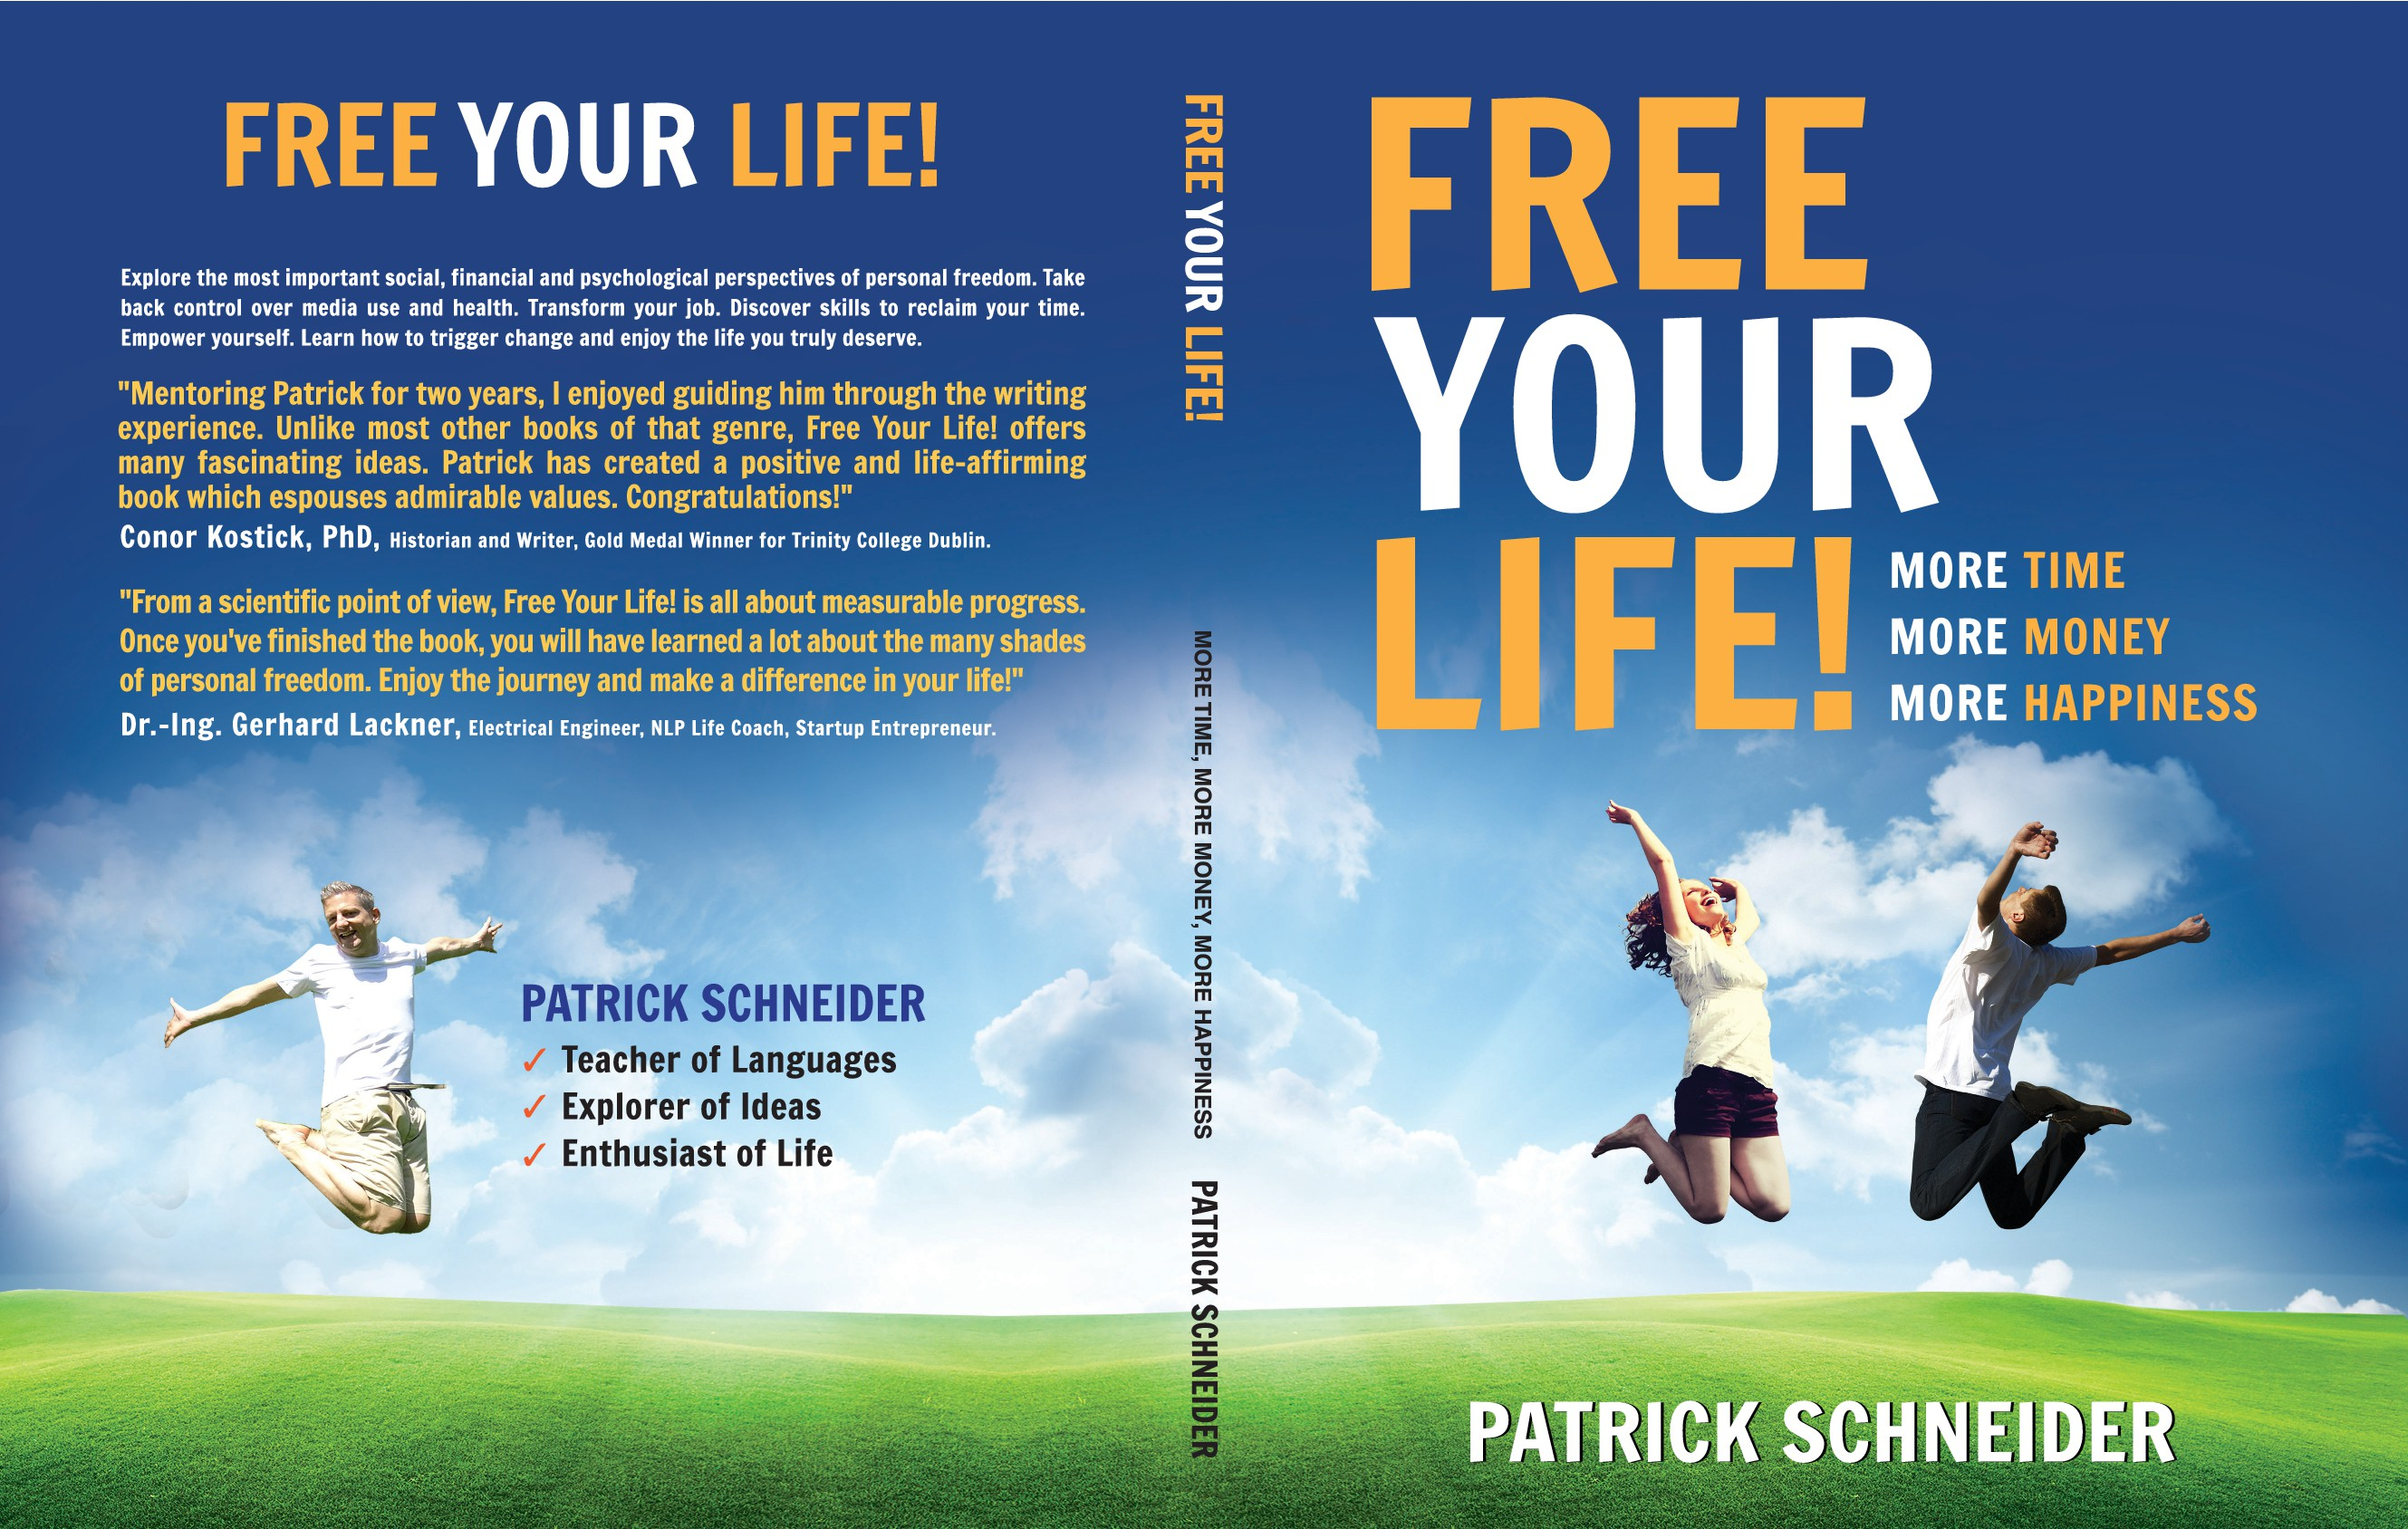 Design a book cover that visualizes personal freedom!